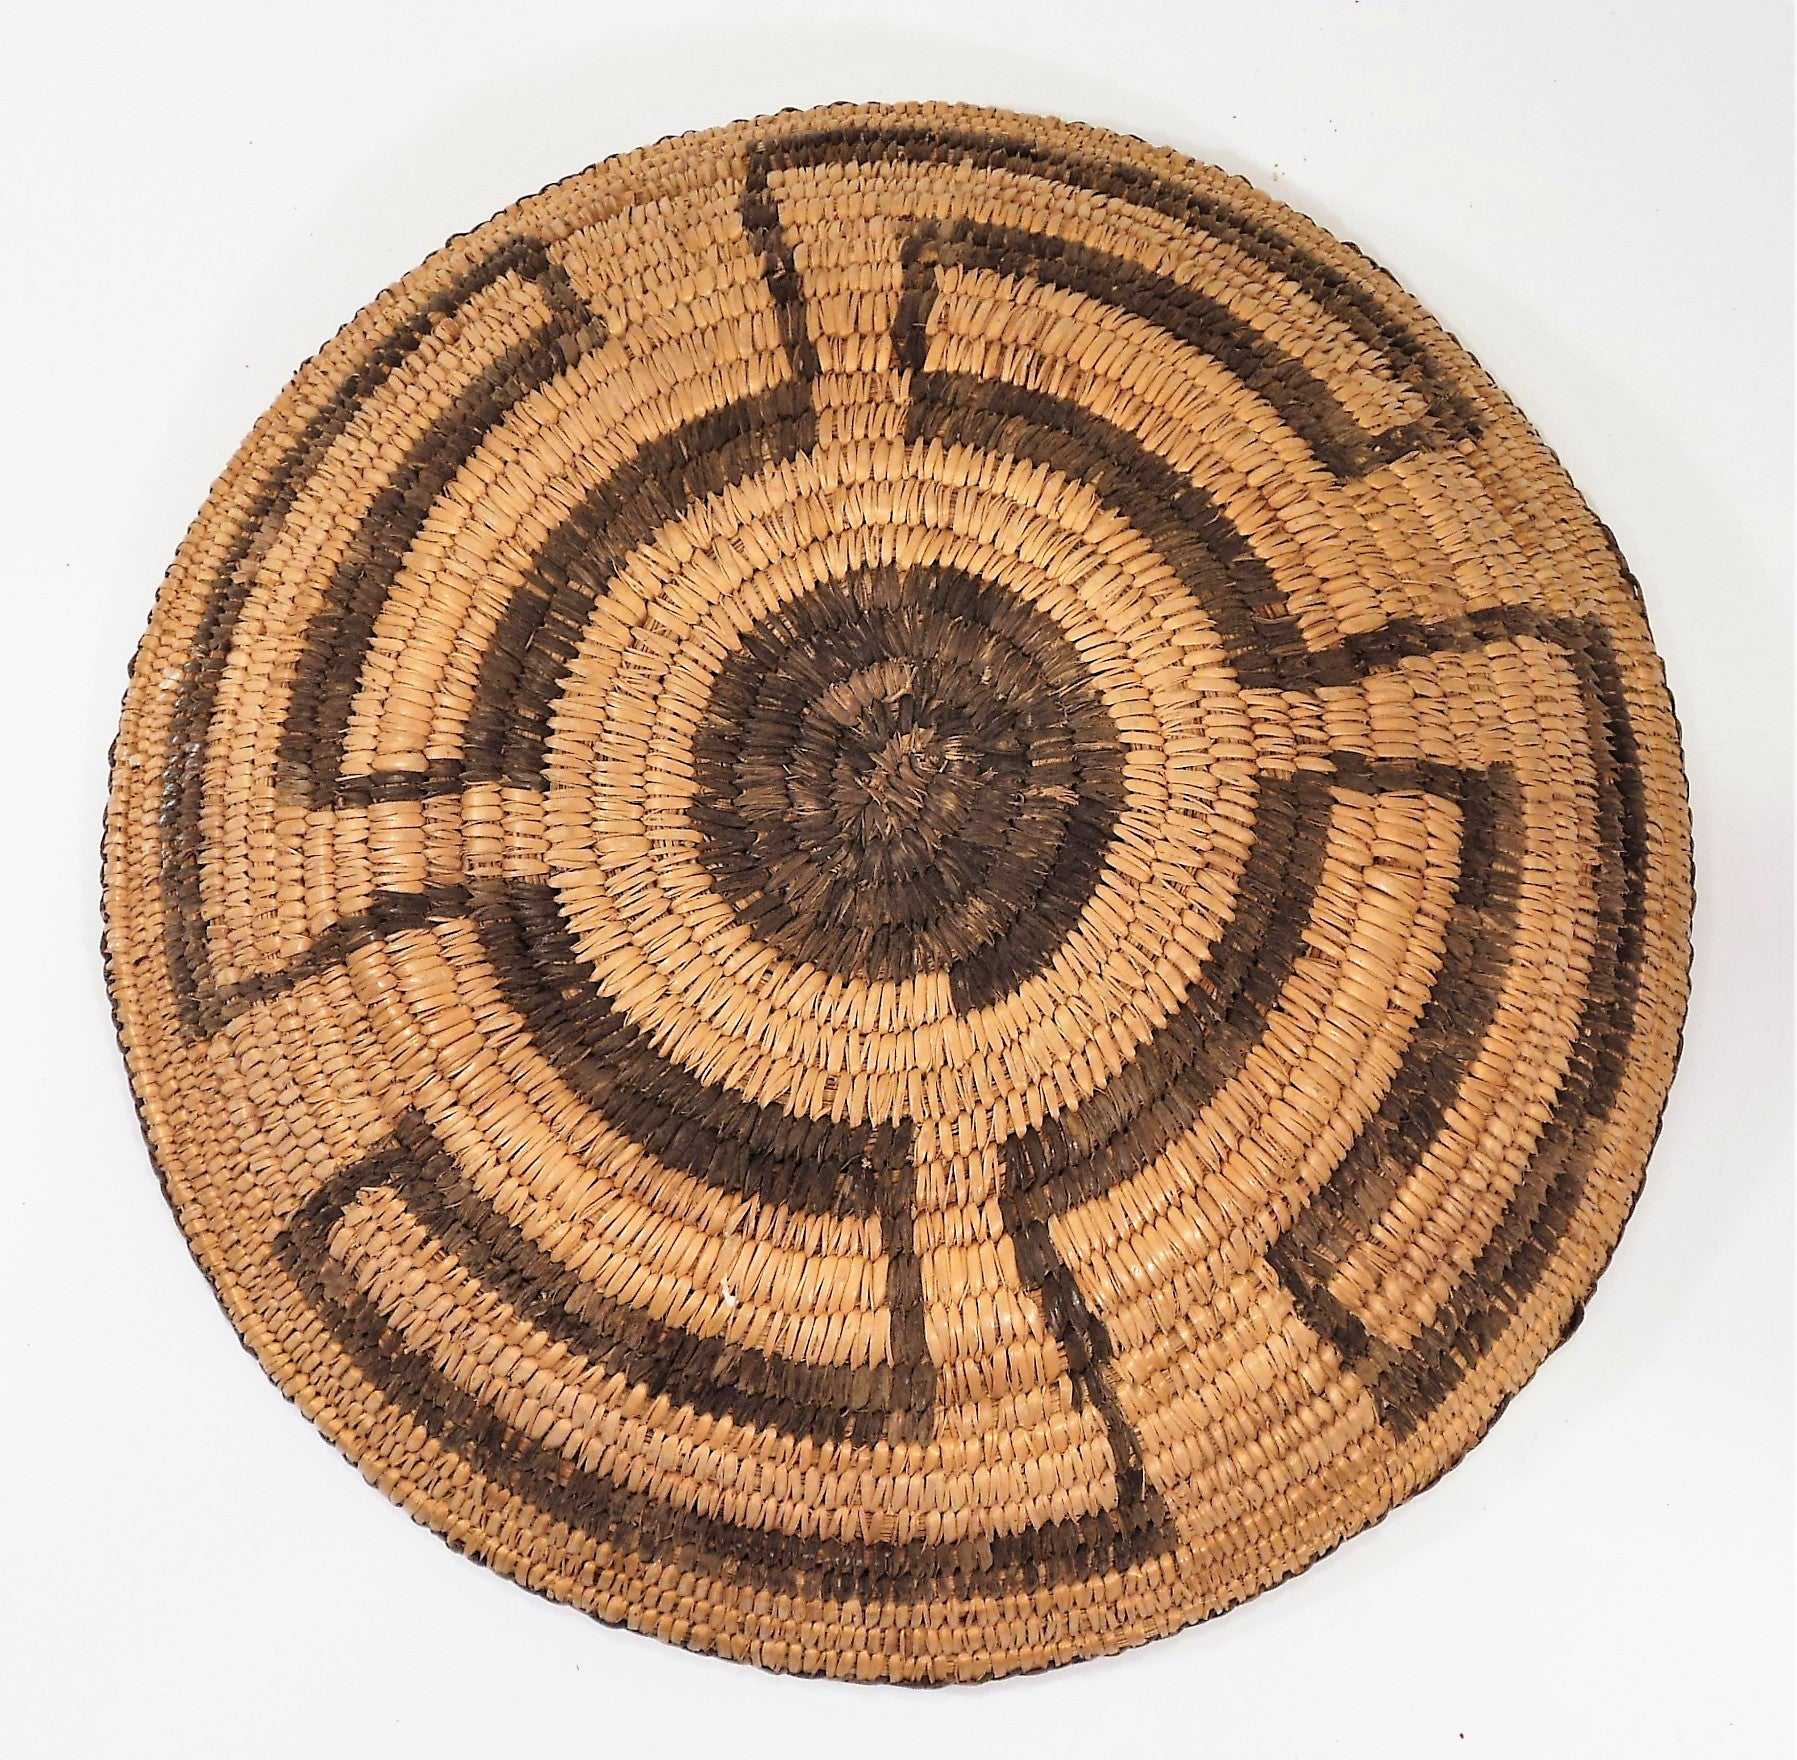 Pima Tray Basket with Four Winds Pattern 1915-1920